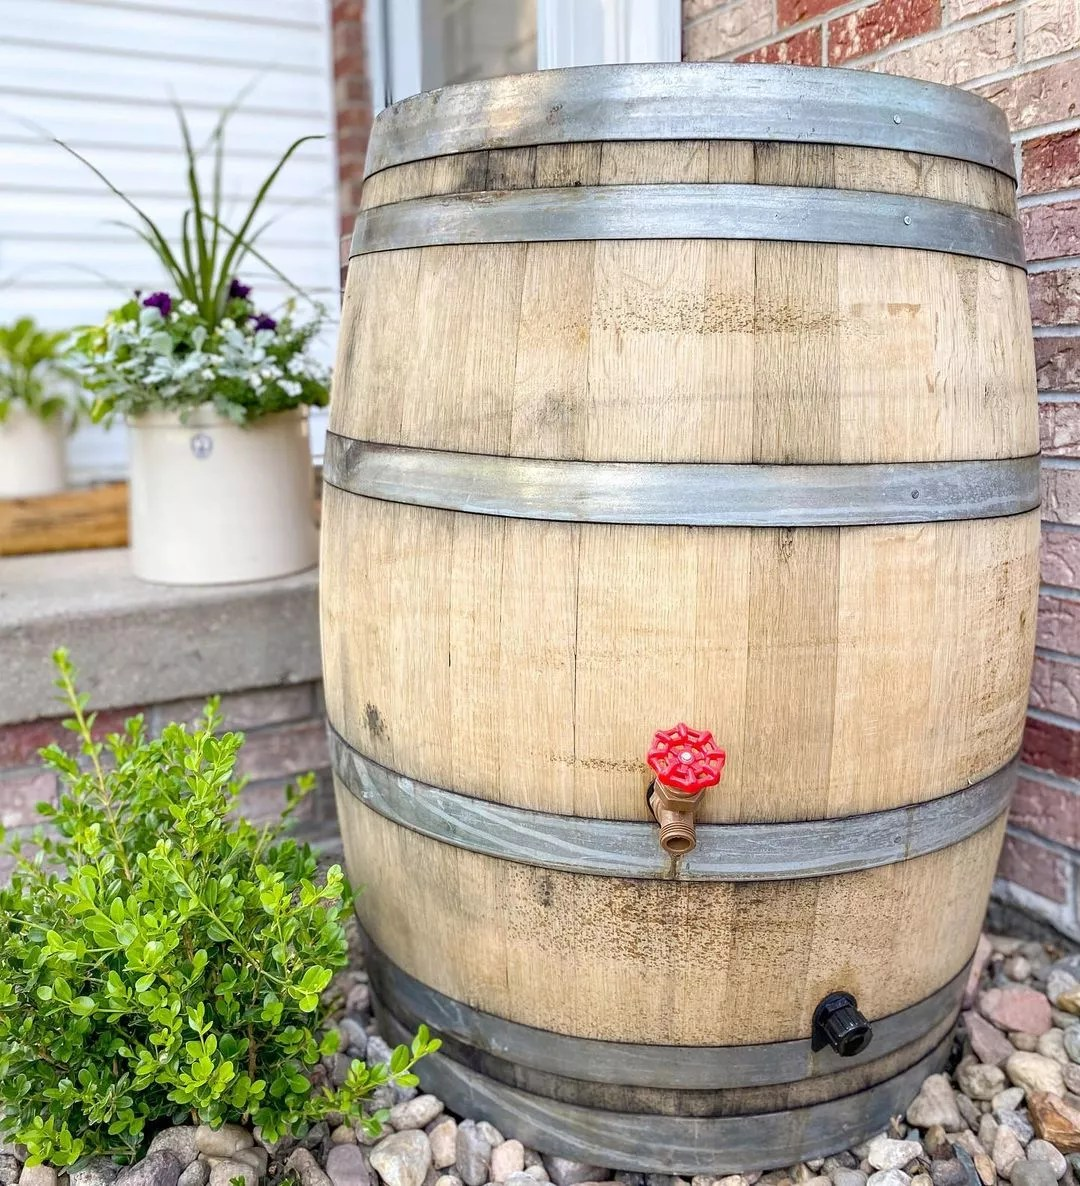 Wooden Barrel Designed to Be an Outdoor Rain Water Catcher. Photo by Instagram user @midwestlifeandstyle